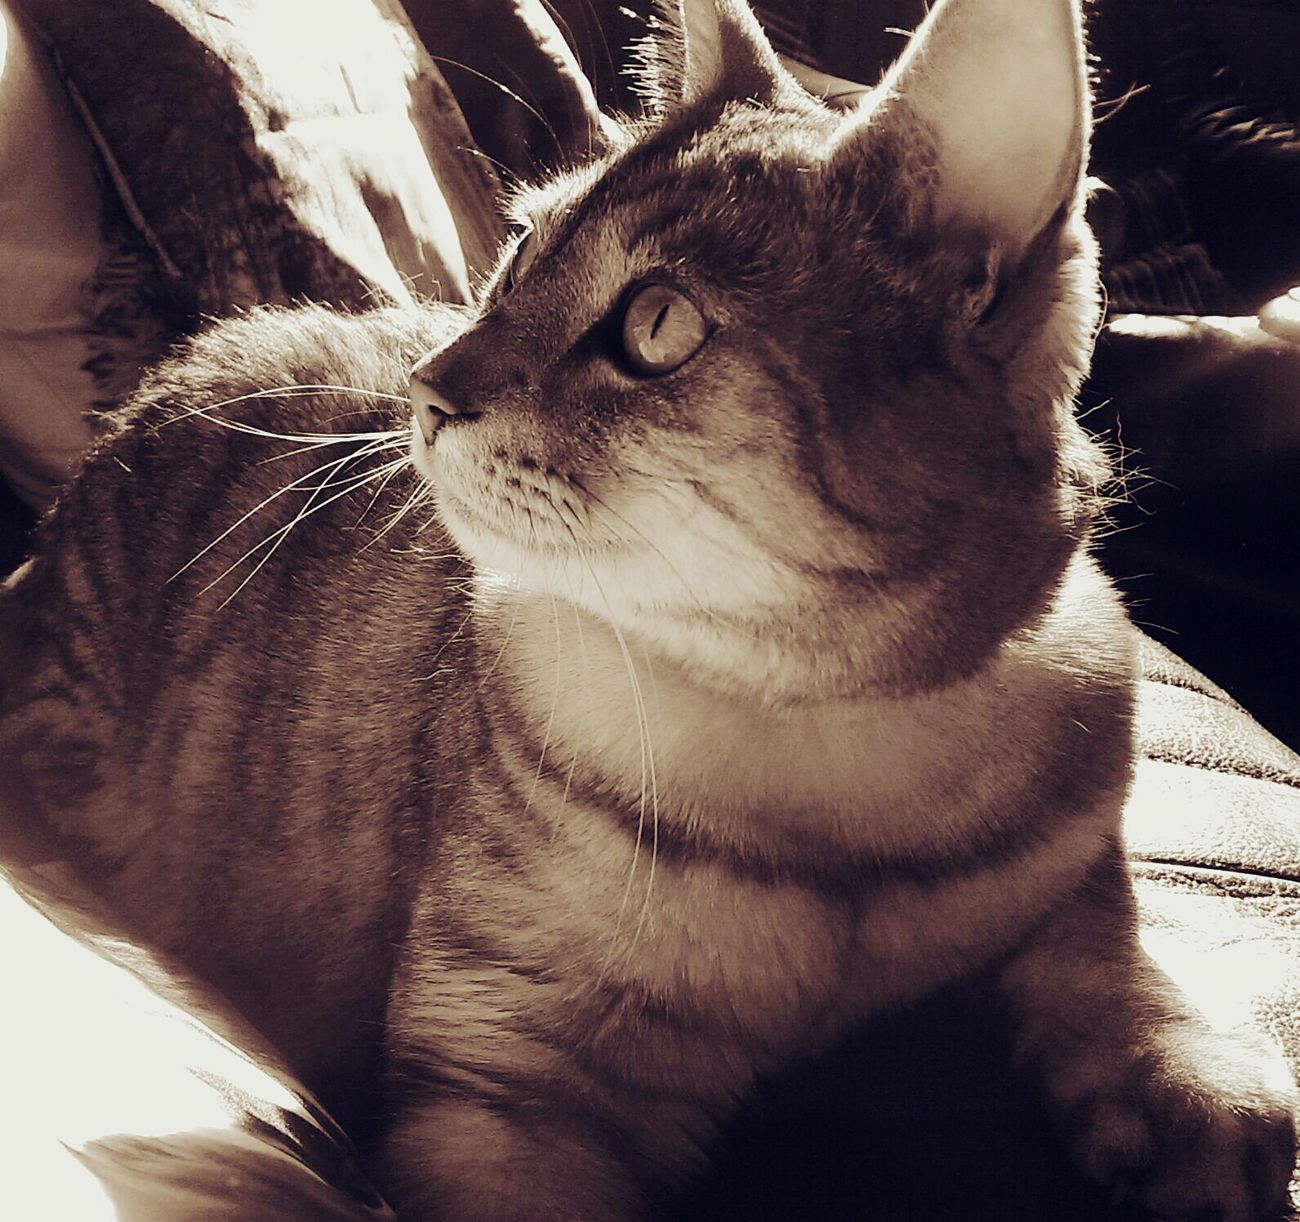 Cats Of The Day Cat♡ Cats Of EyeEm I Love My Cat ❤ Catslife Catlover Cute Cats Monochrome Sepia Sunbathing